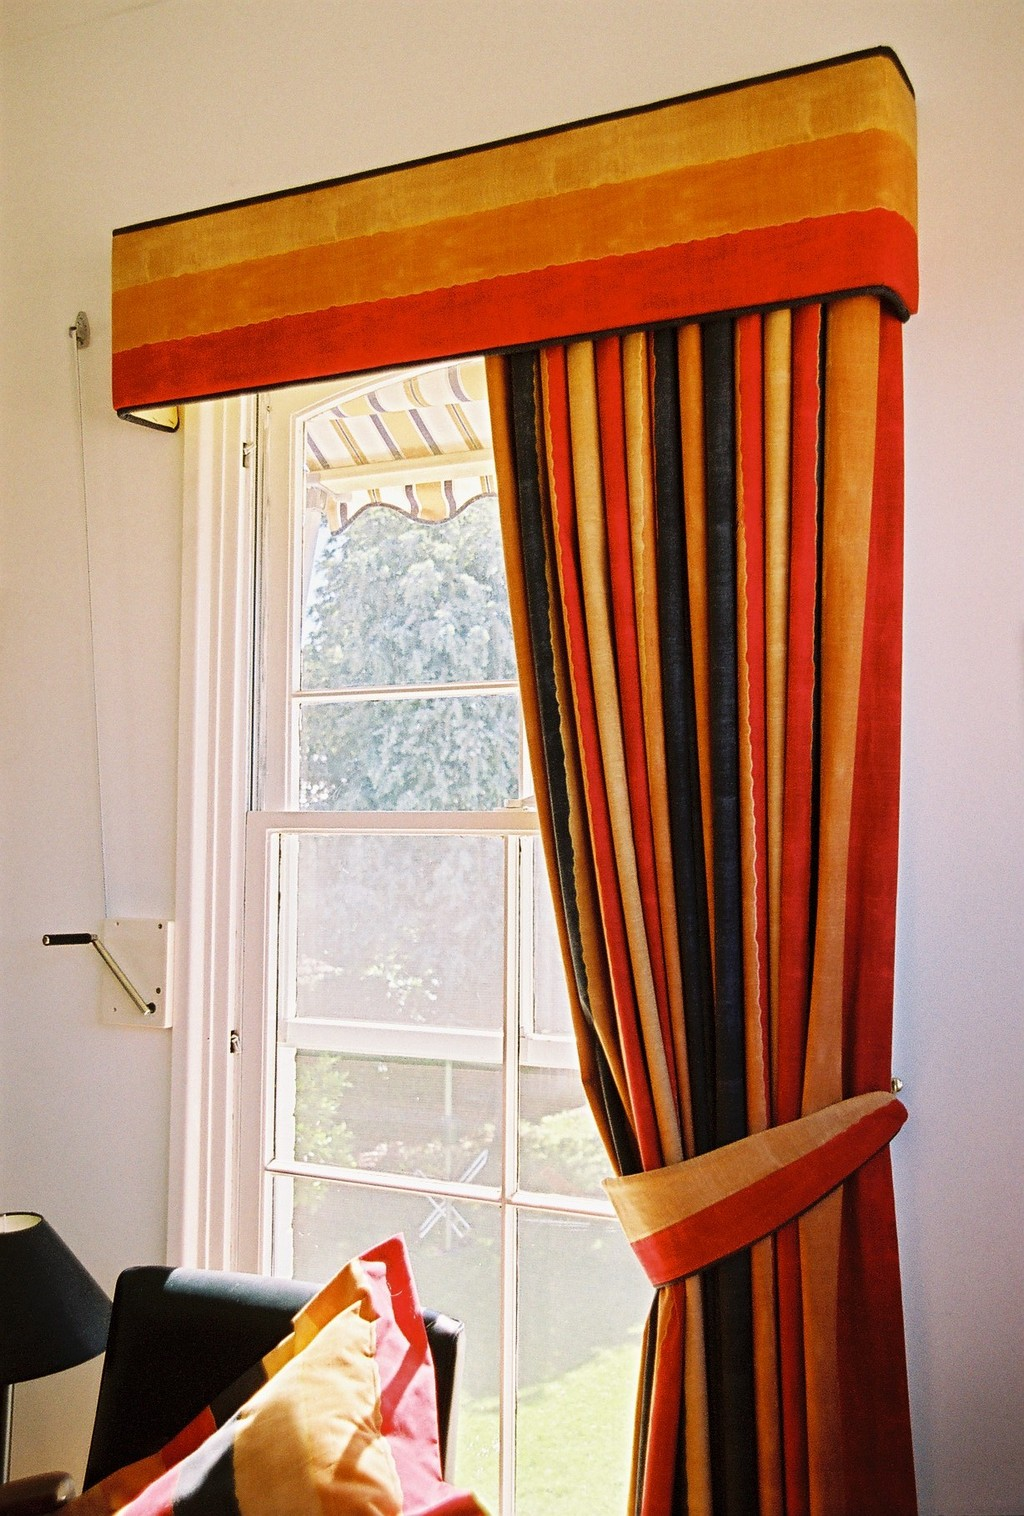 alternative windows window treatments curtains, curtain patterns, curtain panels, bamboo curtains